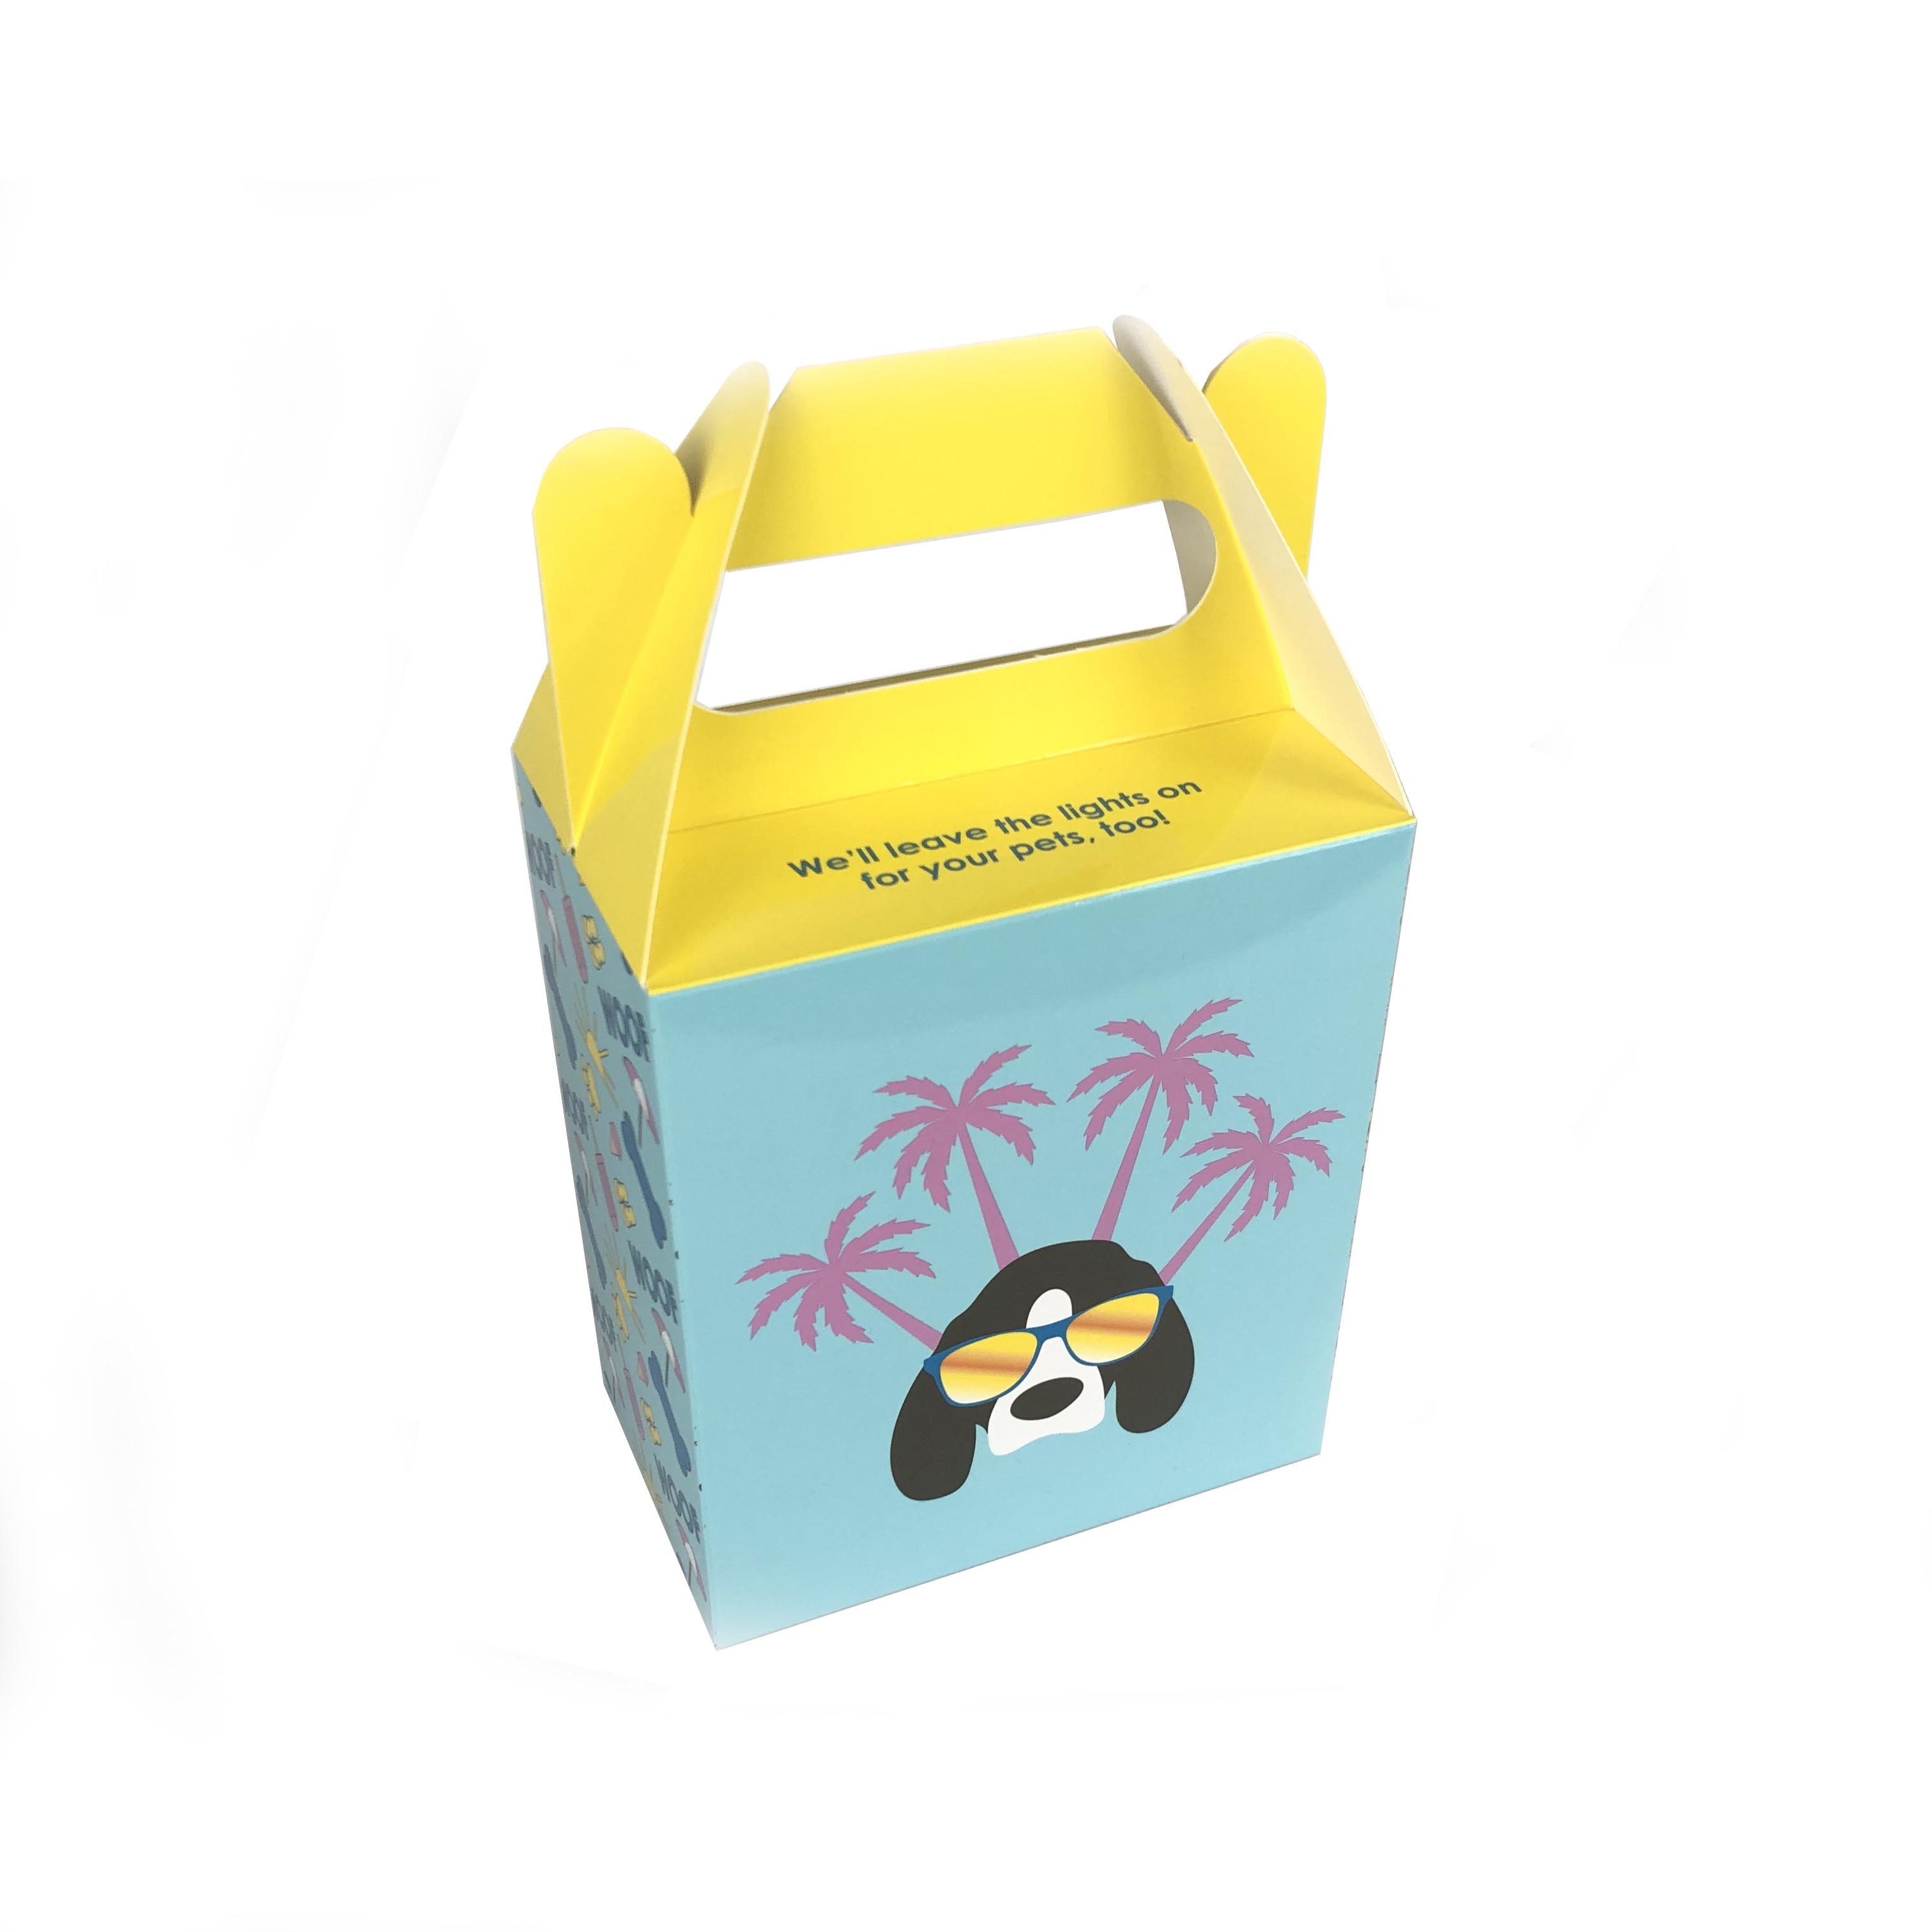 Welm ivory deli packaging company for gift-1